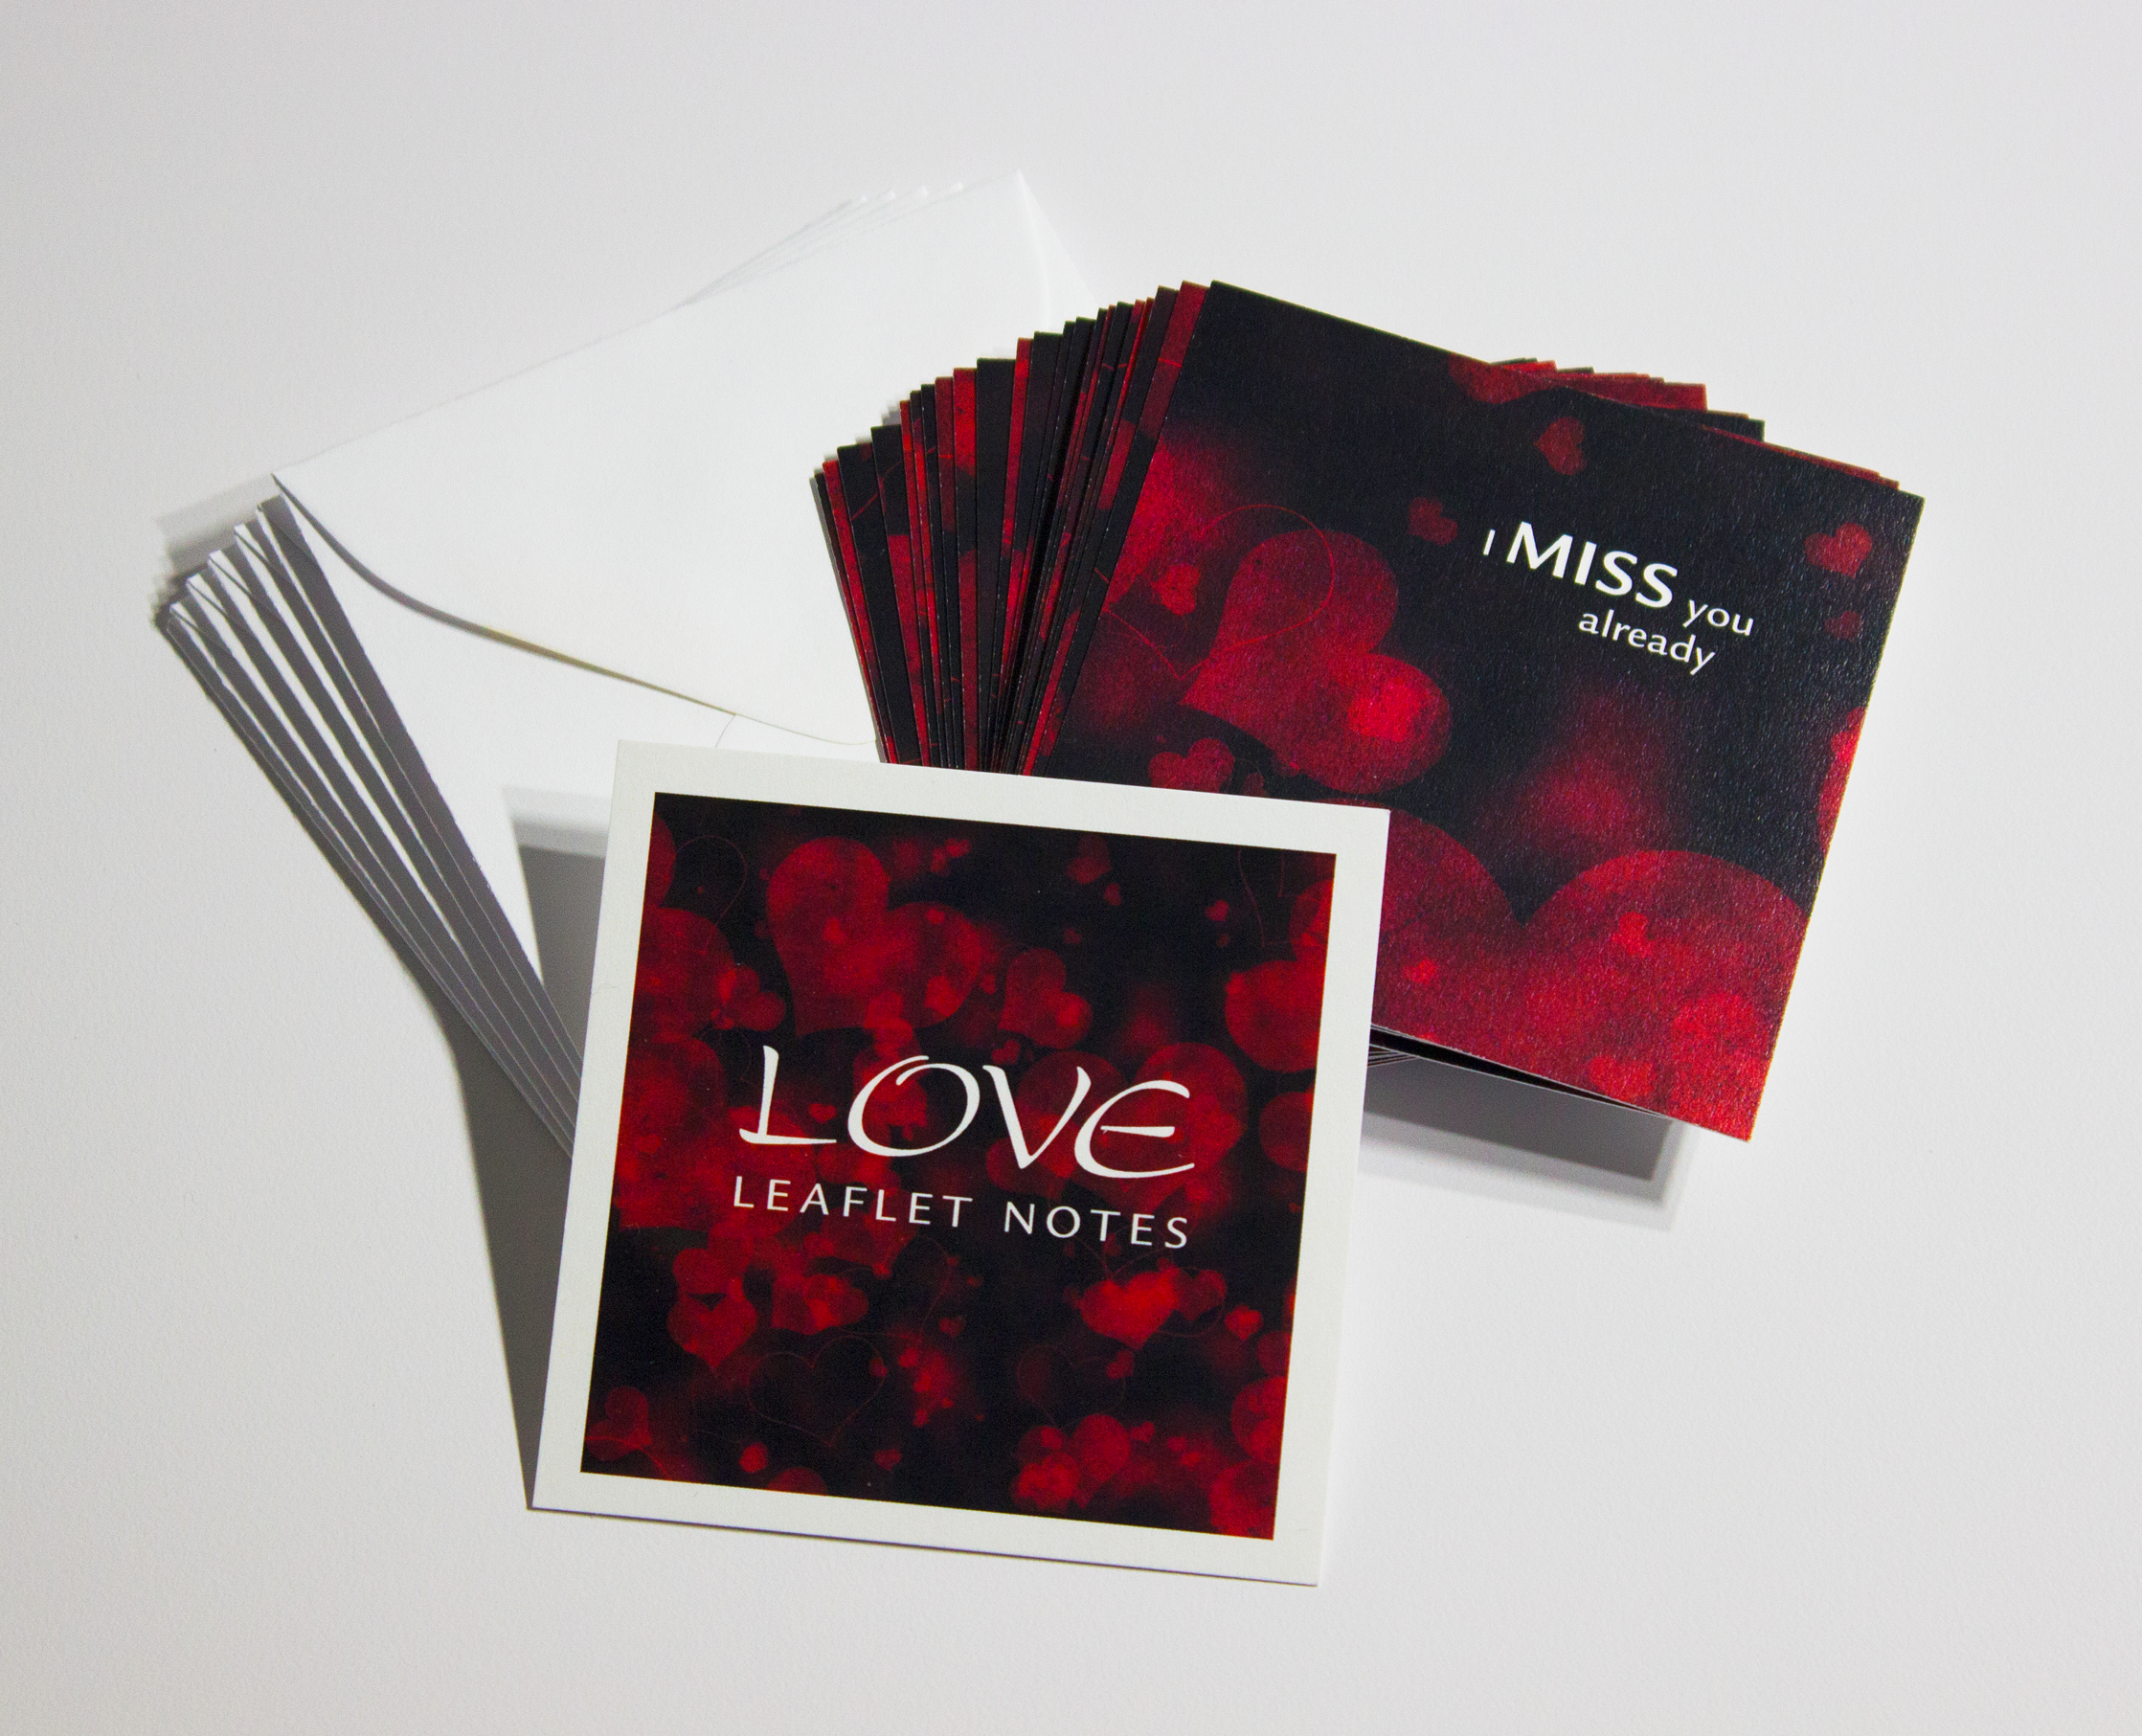 LOVE LEAFLET NOTES - $18  Like a hug and a kiss, our tiny Love LeafLet Notes are timeless messages of affection that are sure to capture the heart of someone special.